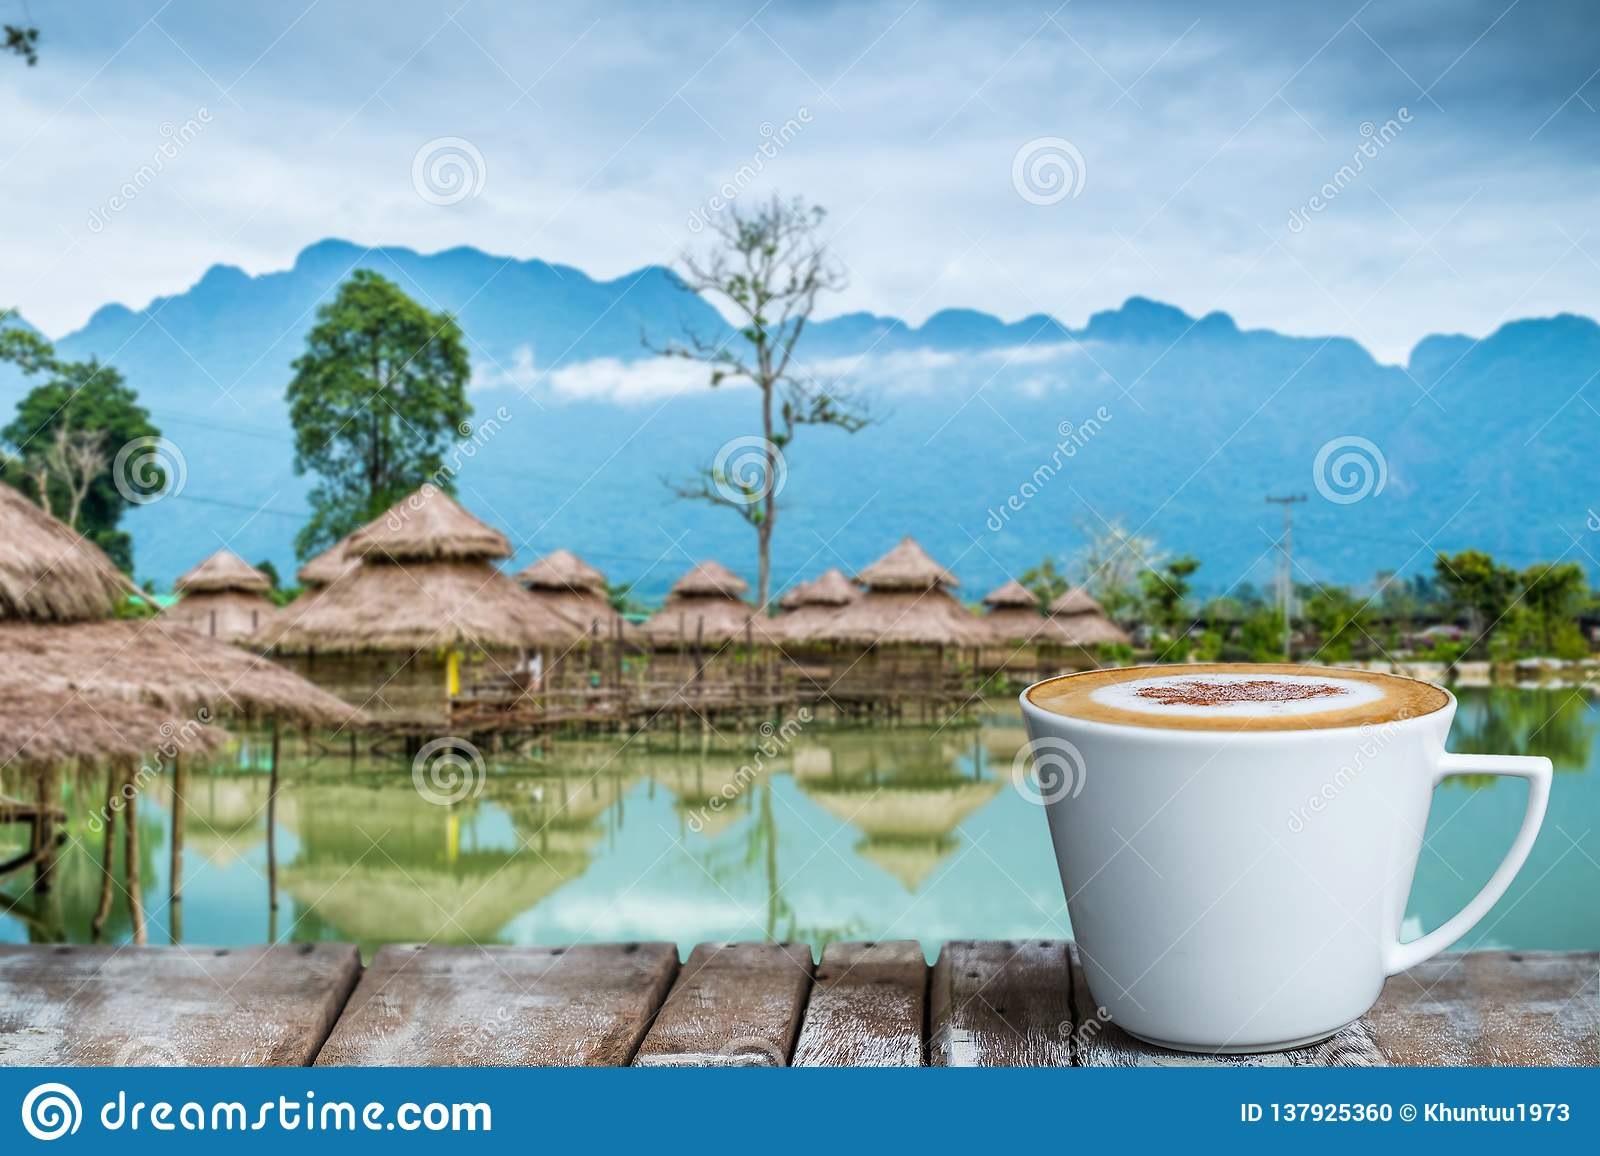 A cup of coffee on the wooden table by the lake